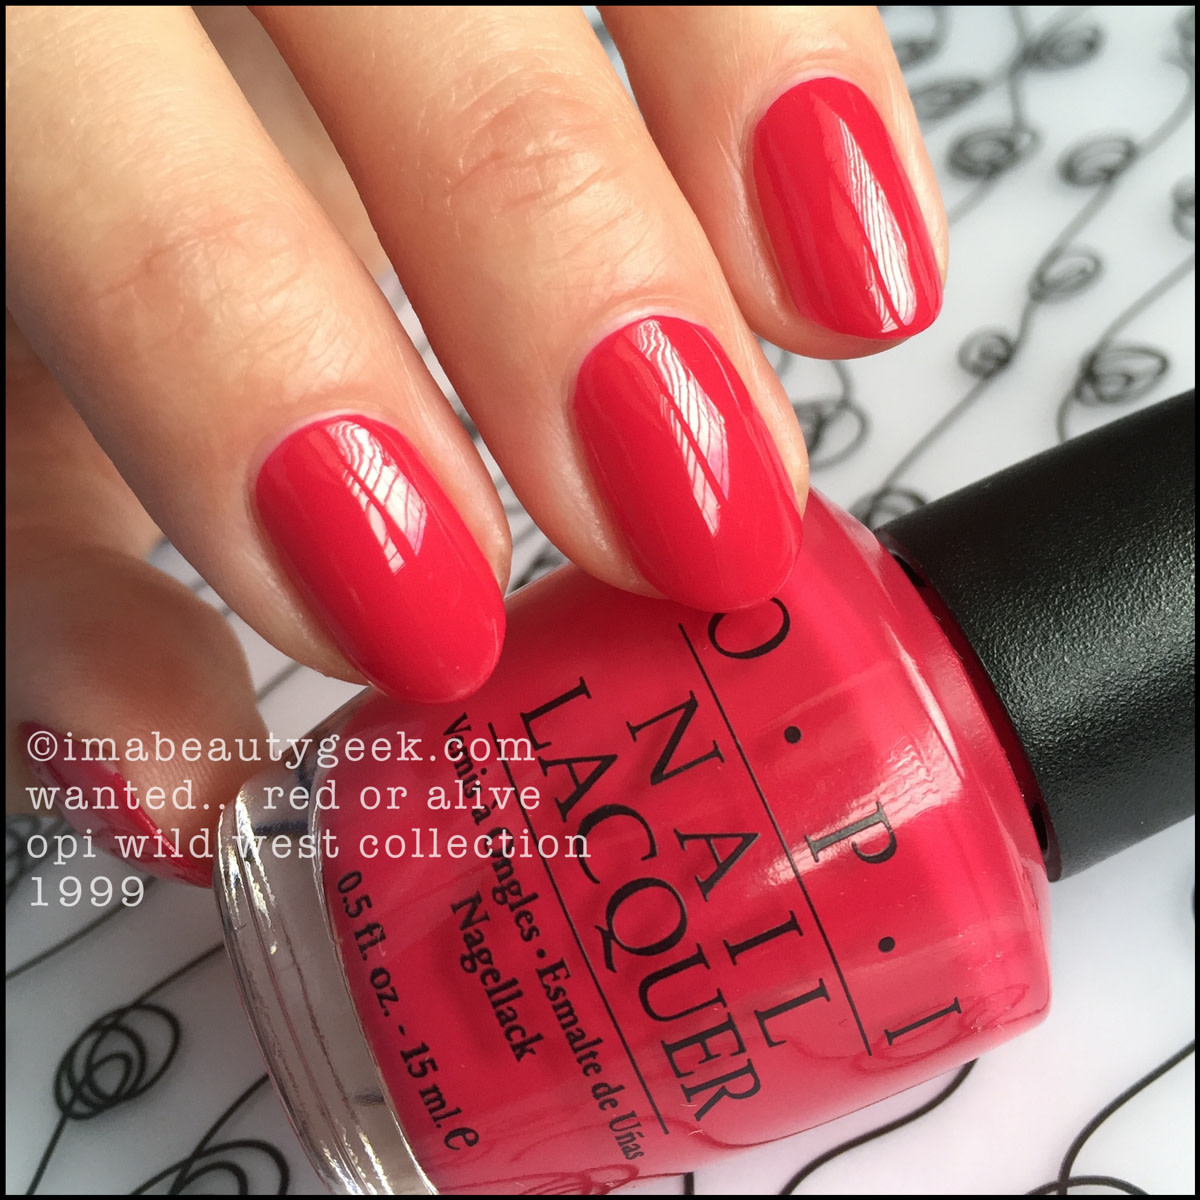 OPI Wanted Red Or Alive 1999_OPI Wild West Collection